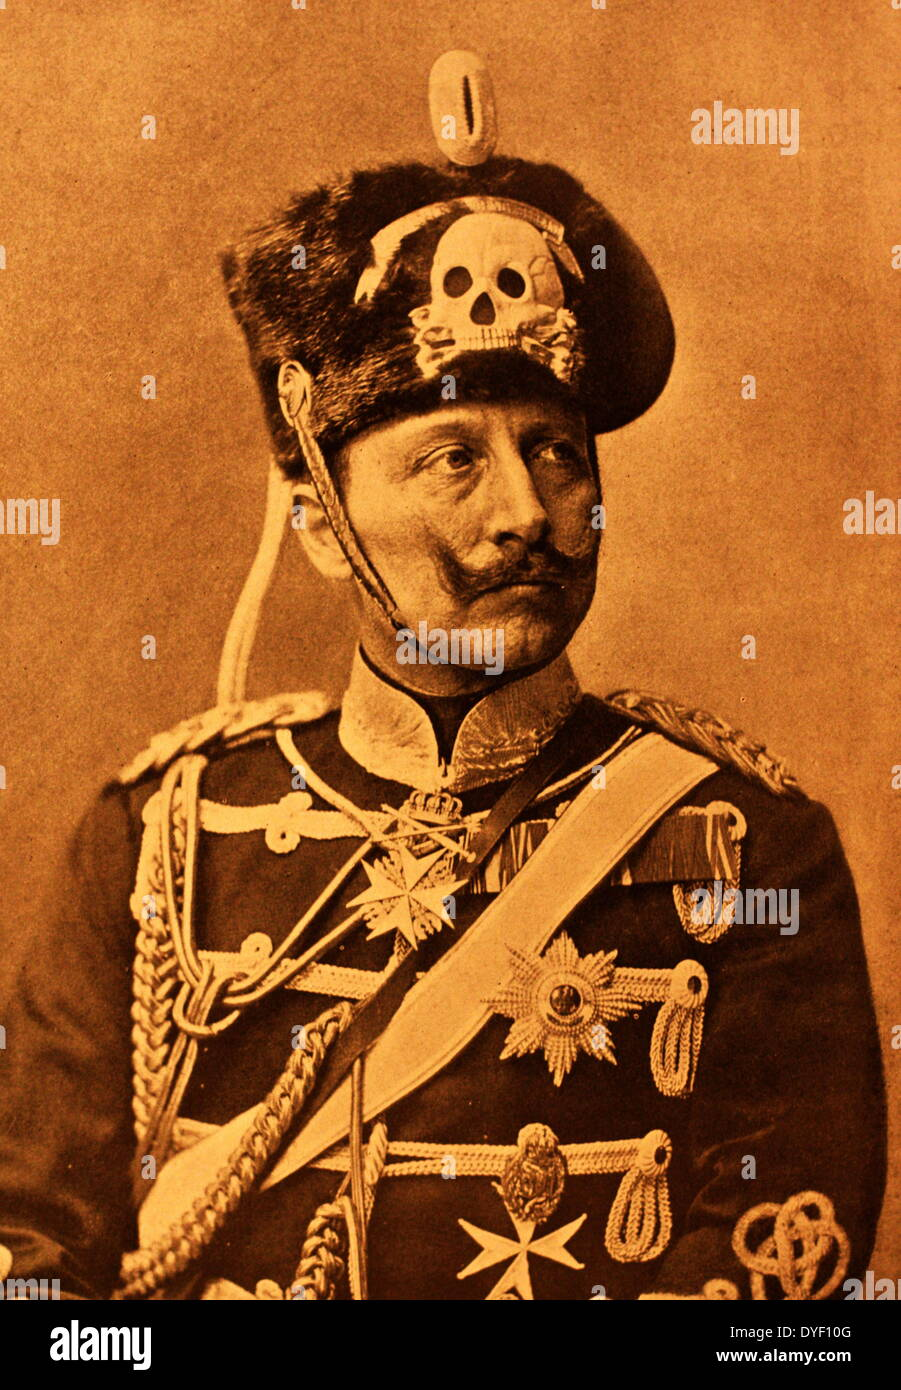 Portrait photograph of Kaiser Wilhelm III, (Frederick William Victor Albert of Prussia). - Stock Image